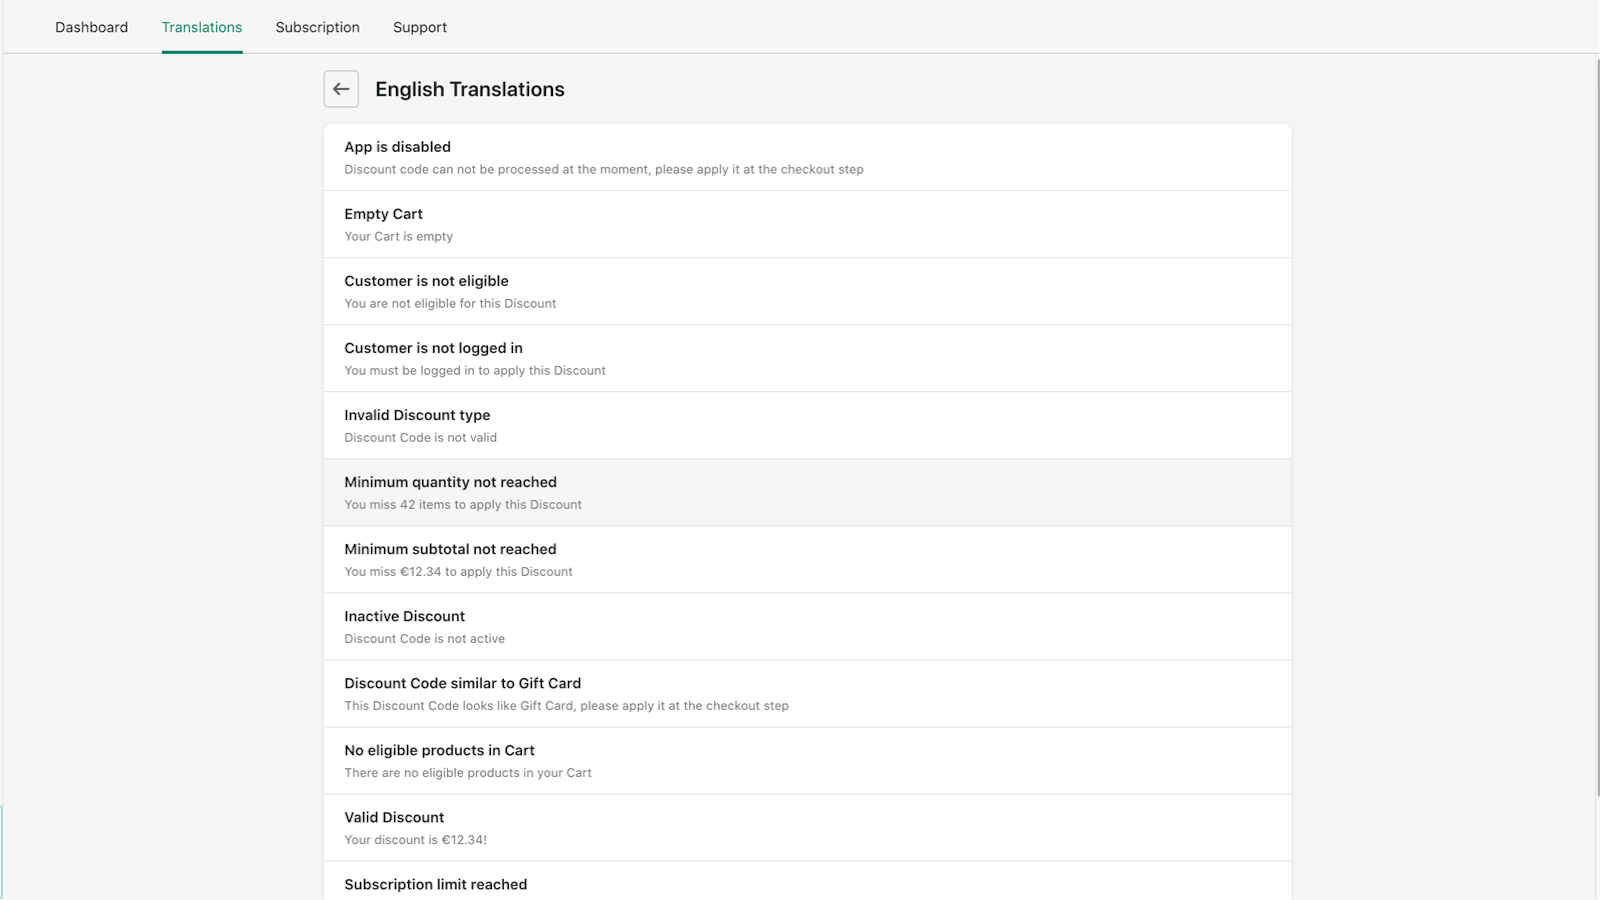 Translations for each language